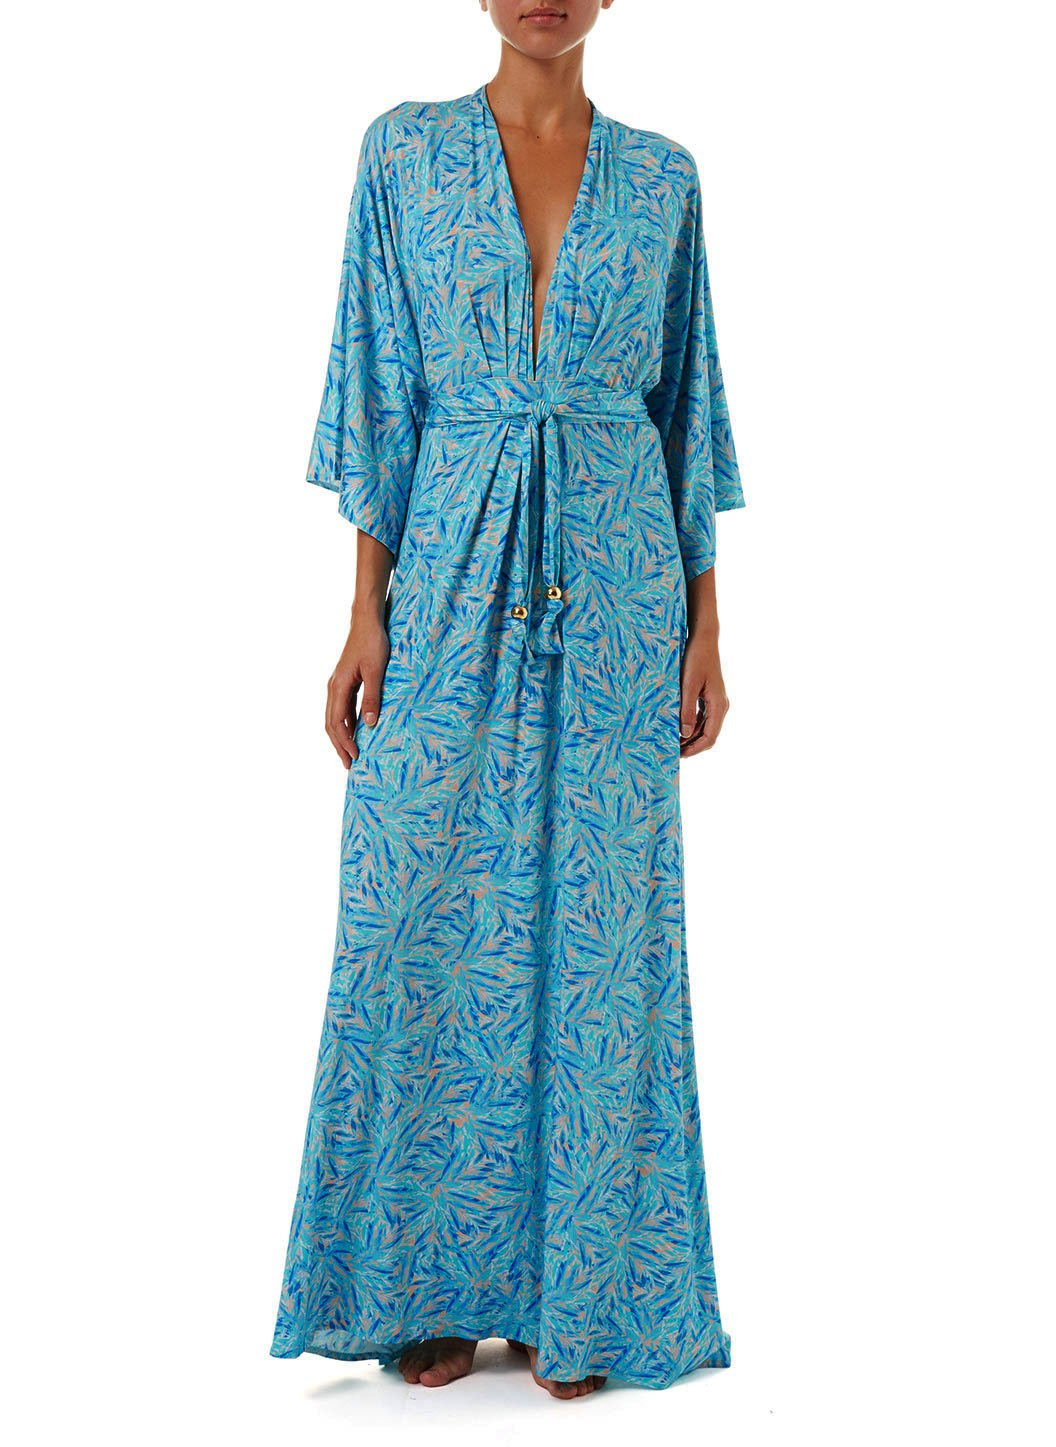 annaelle blue leaf longsleeve belted maxi dress 2019 F